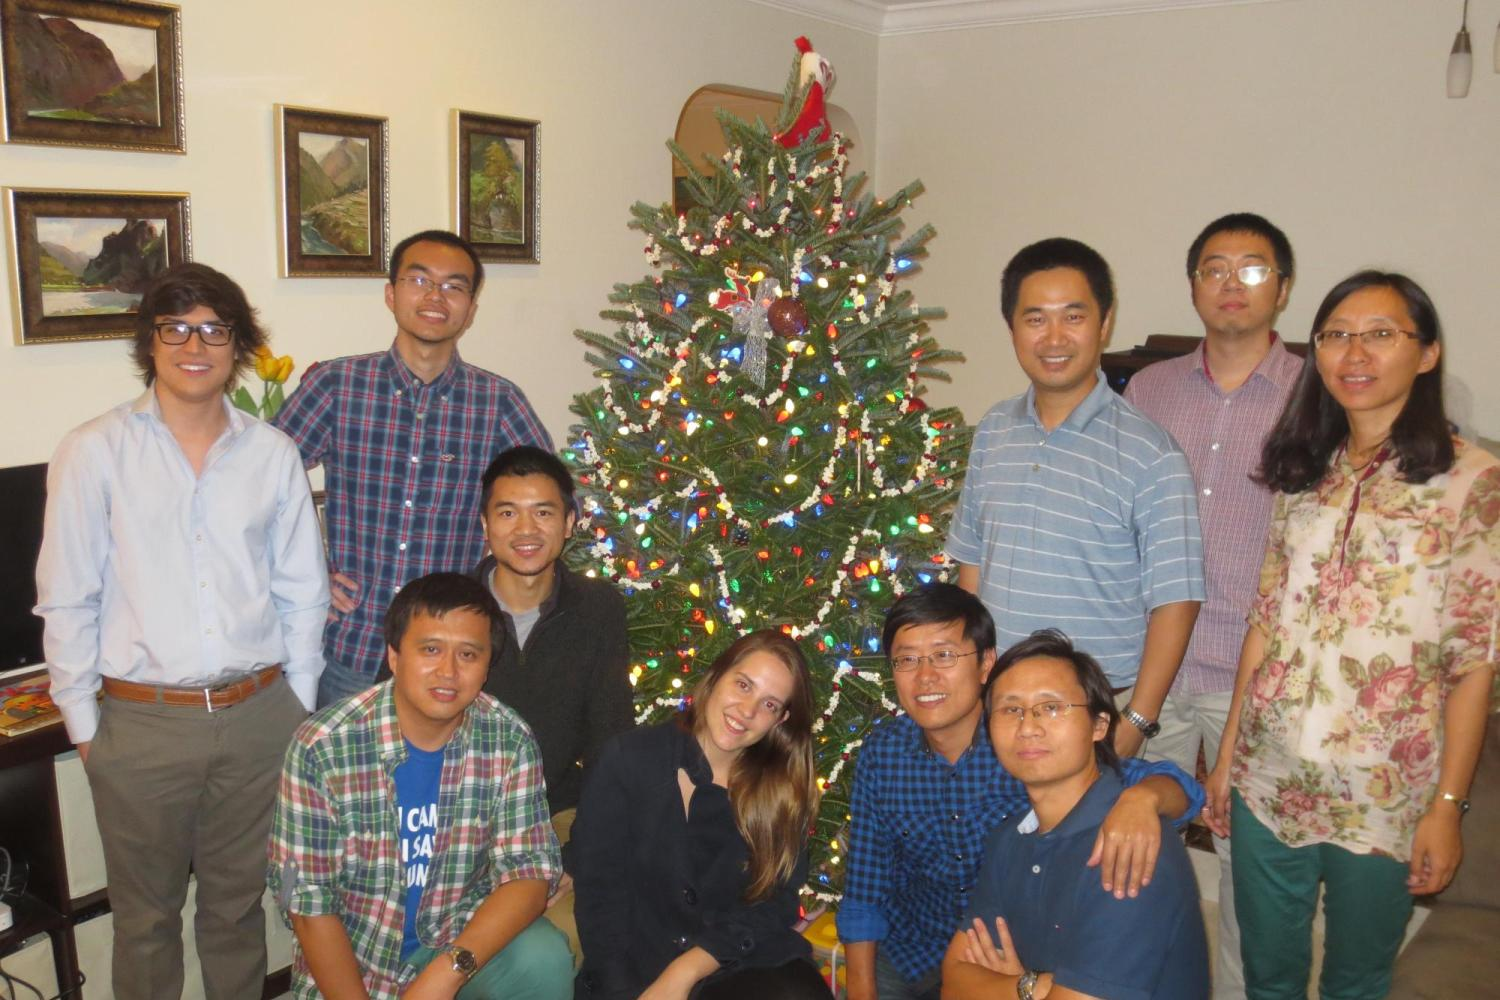 Christmas party at Dr. Zuo's house